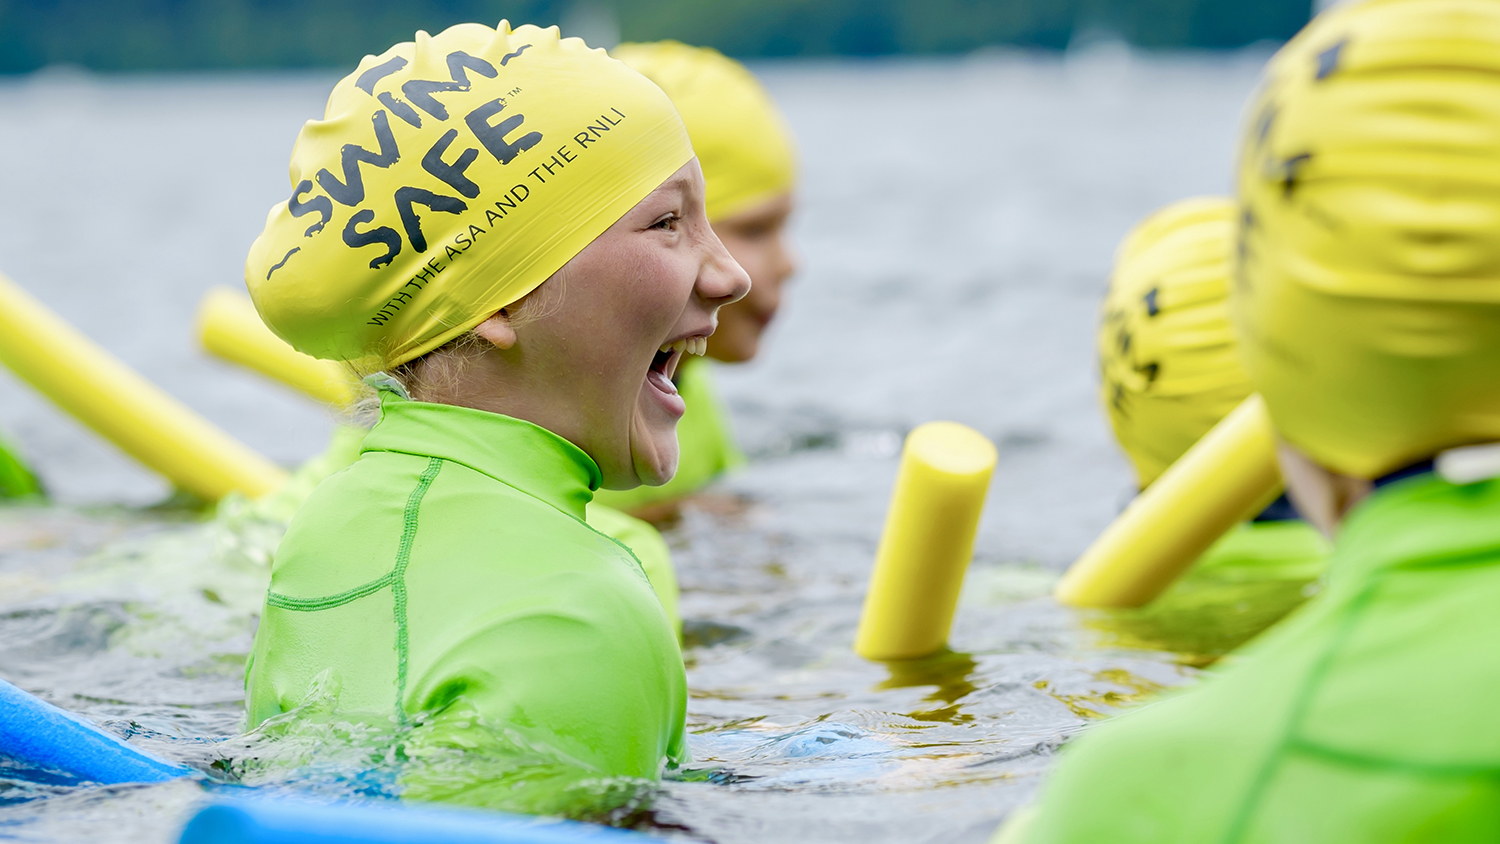 RNLI ASA Swim Safe programme taking place at Lake Windermere in the Lake District